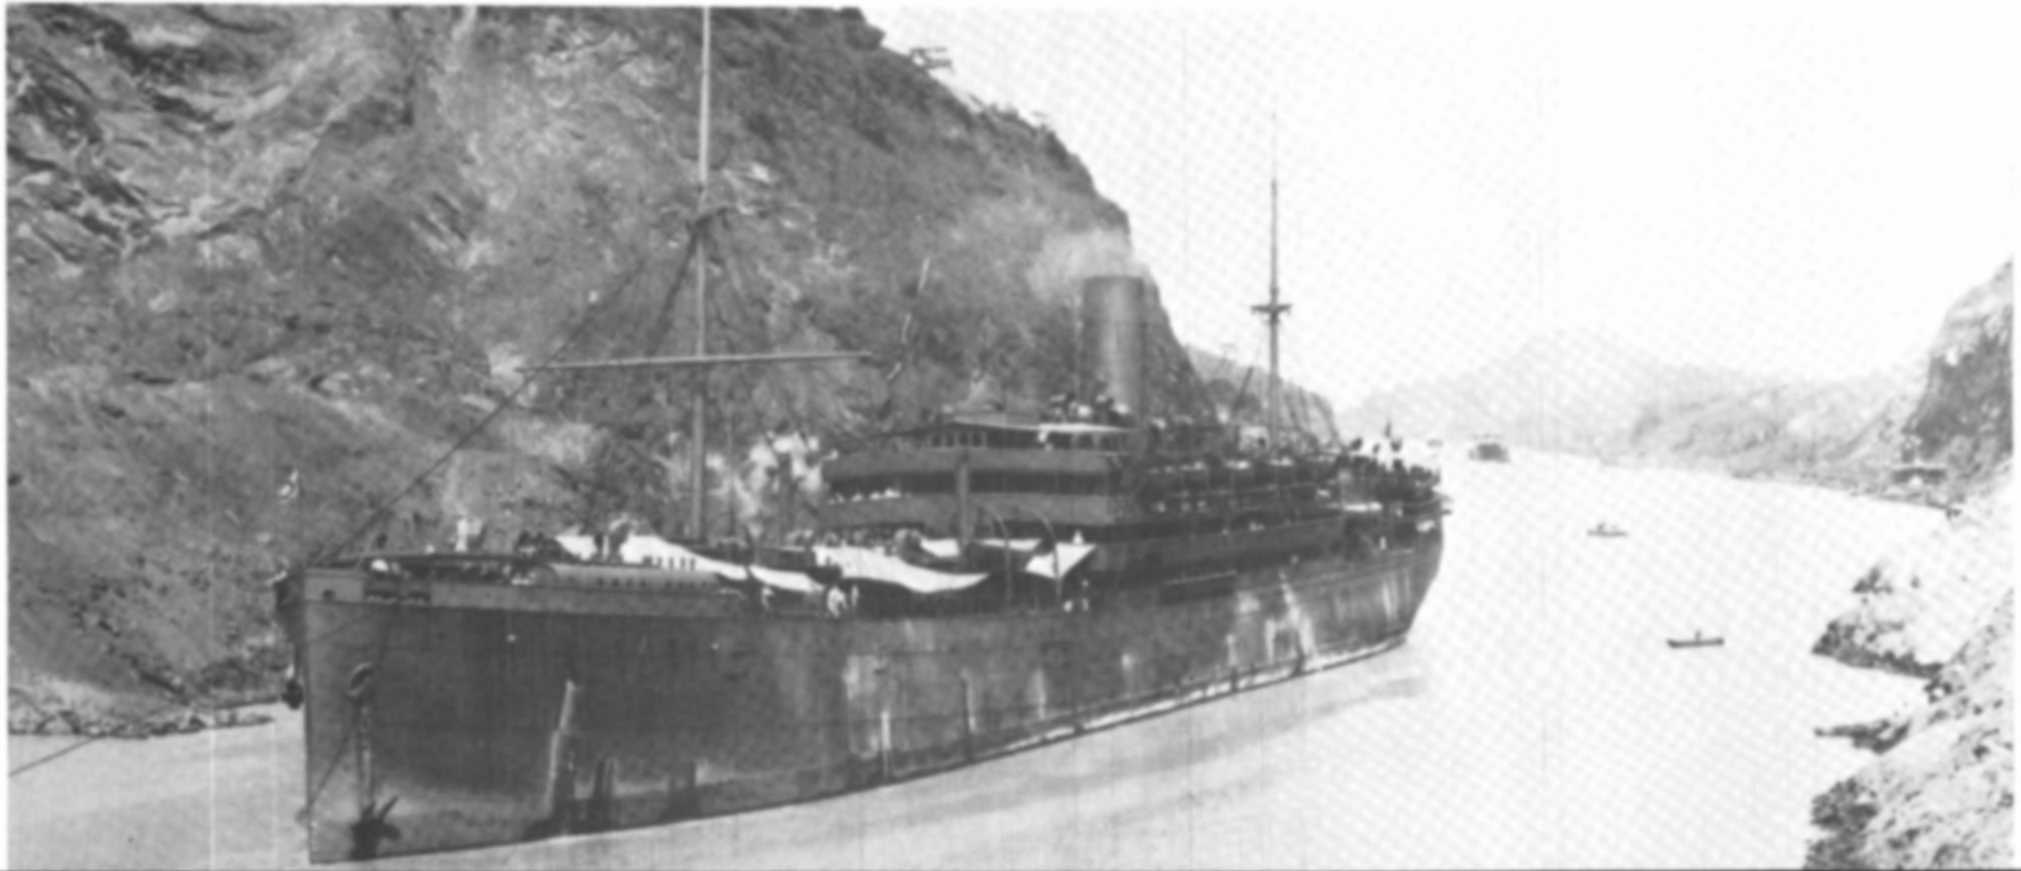 Margaret (Law) Gardner emigrated most probably on the  Remuera  steam ship, operated by the NZ Shipping Company Ltd, on 19 December 1912 from the Port of London with children, John, Robert, Thomas and daughter Margaret, listed separately. The route went via Tenerife (Canary Islands), Cape Town, Hobart then on to the NZ Ports. The Panama Canal had not yet opened and was used by other Shipping Lines from 1916.